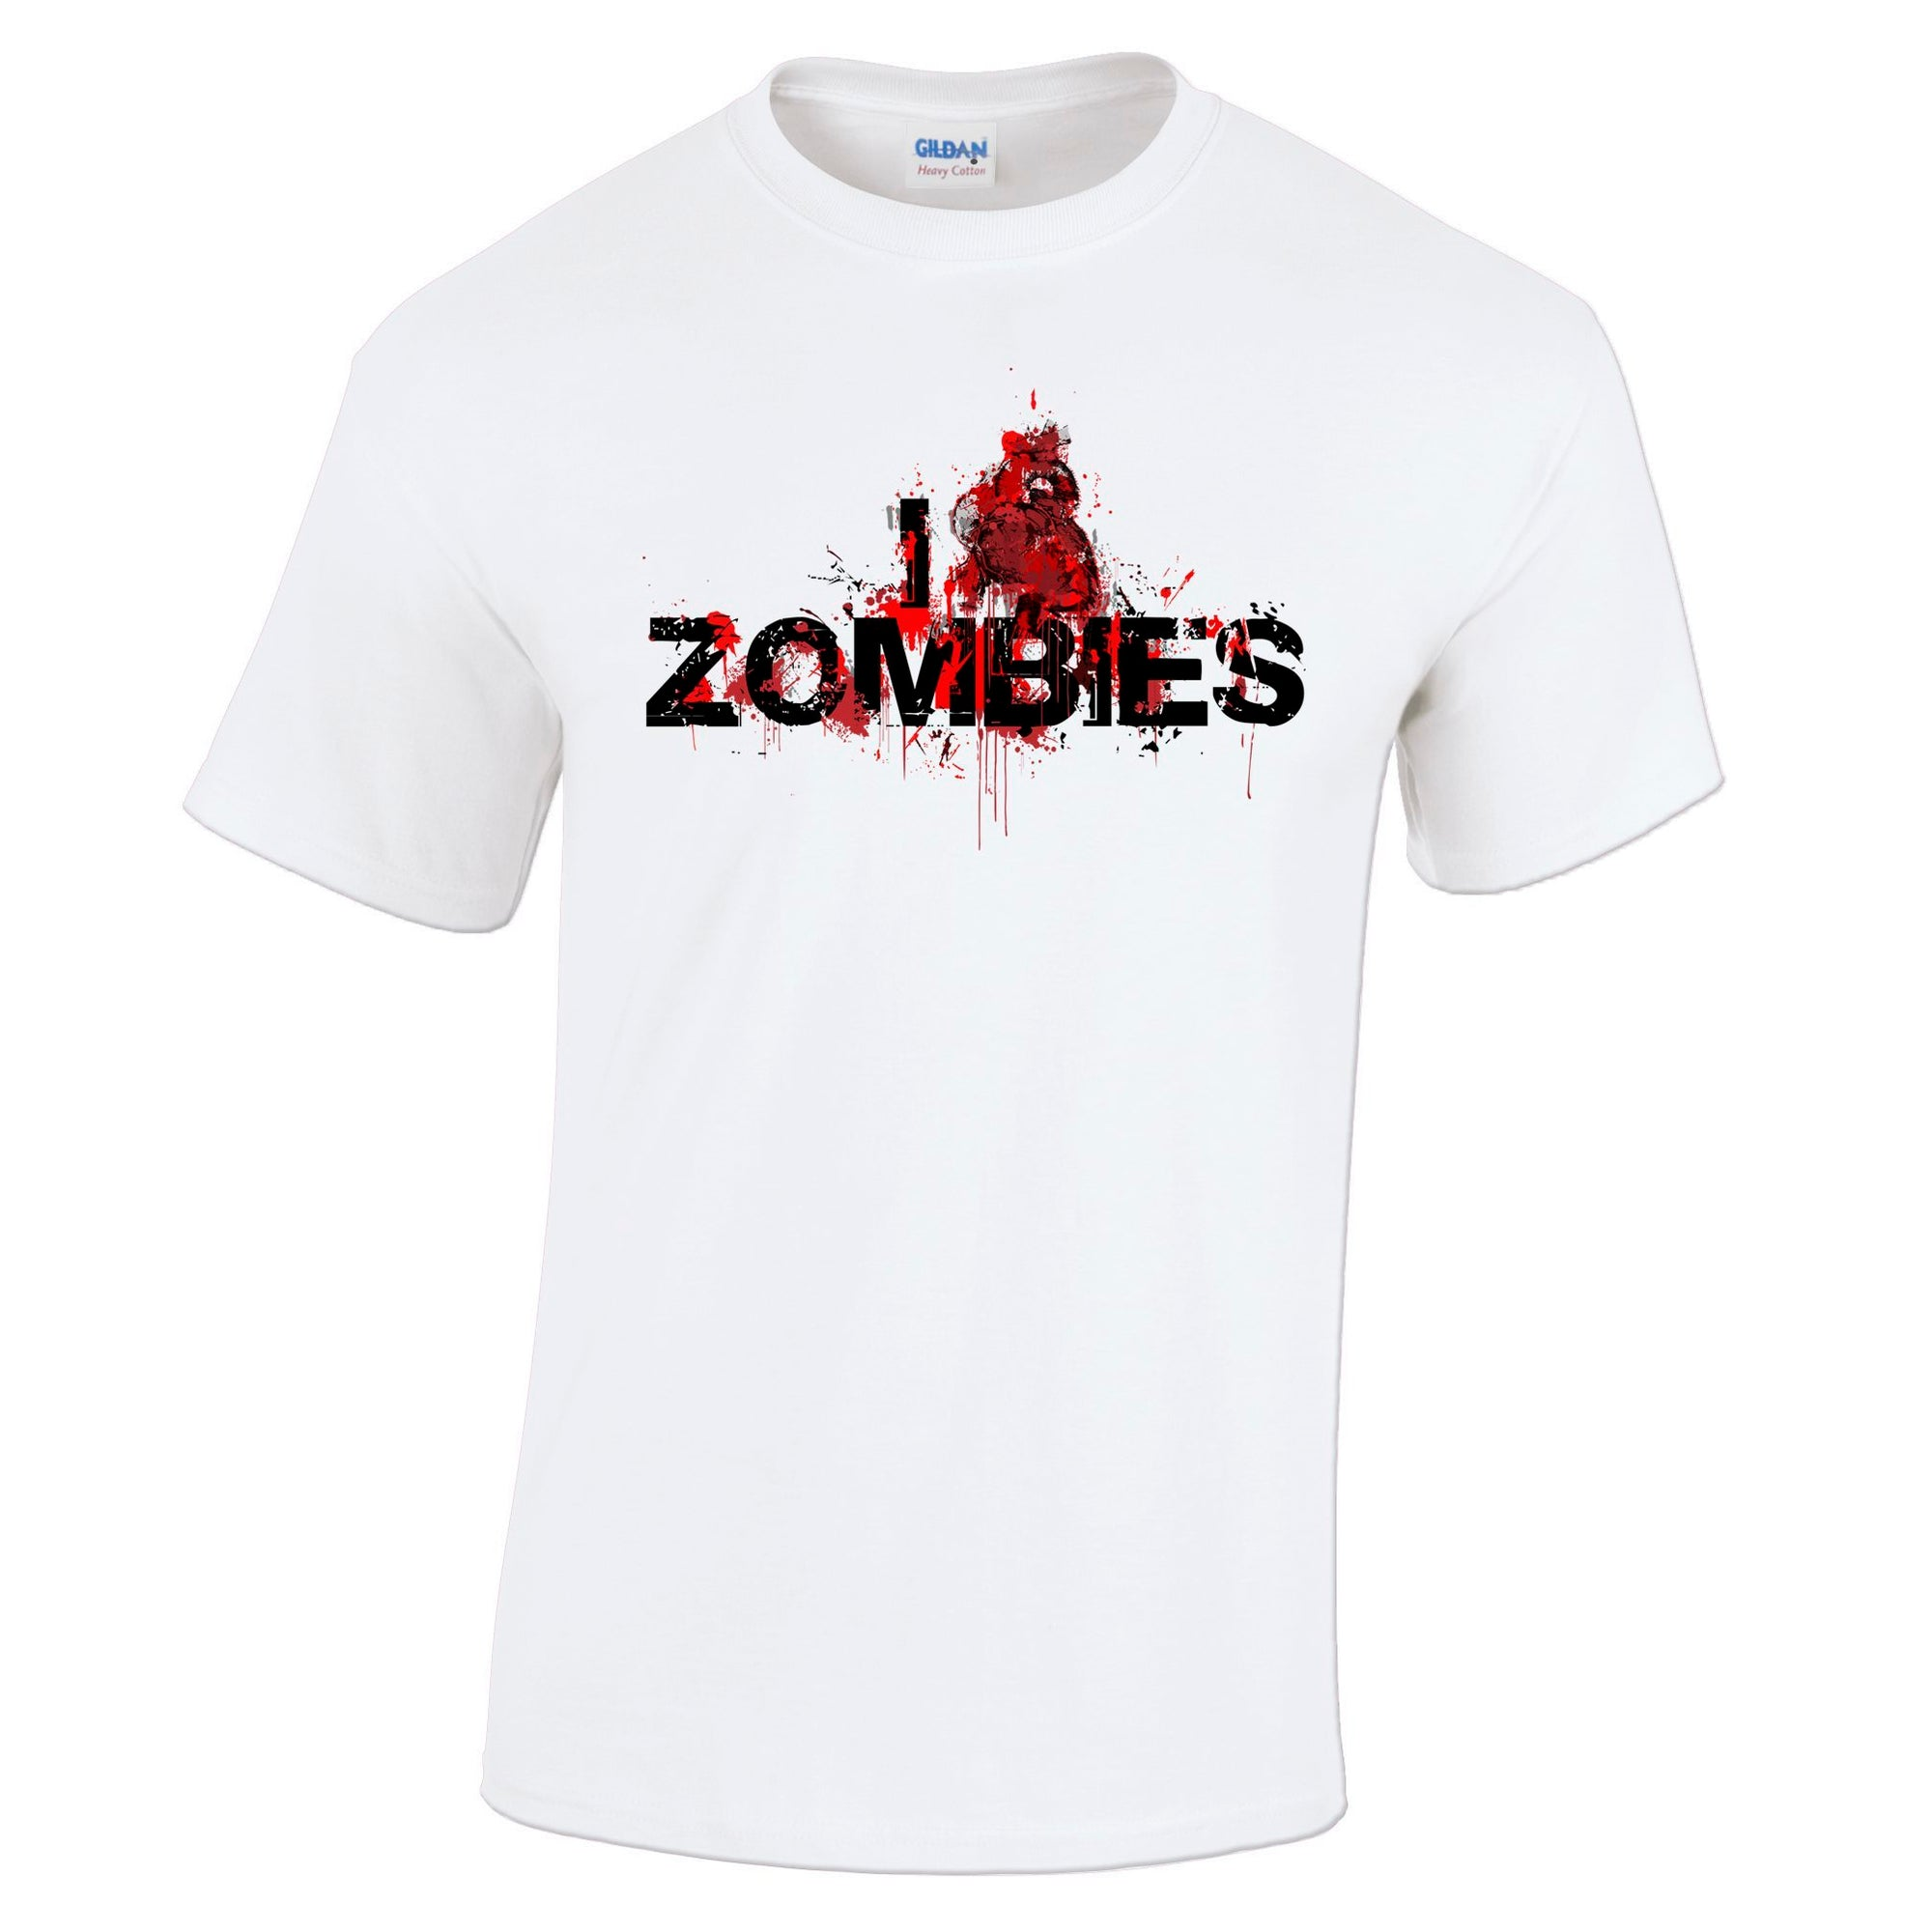 Mens Halloween T Shirt I Love Zombies Slogan Tee